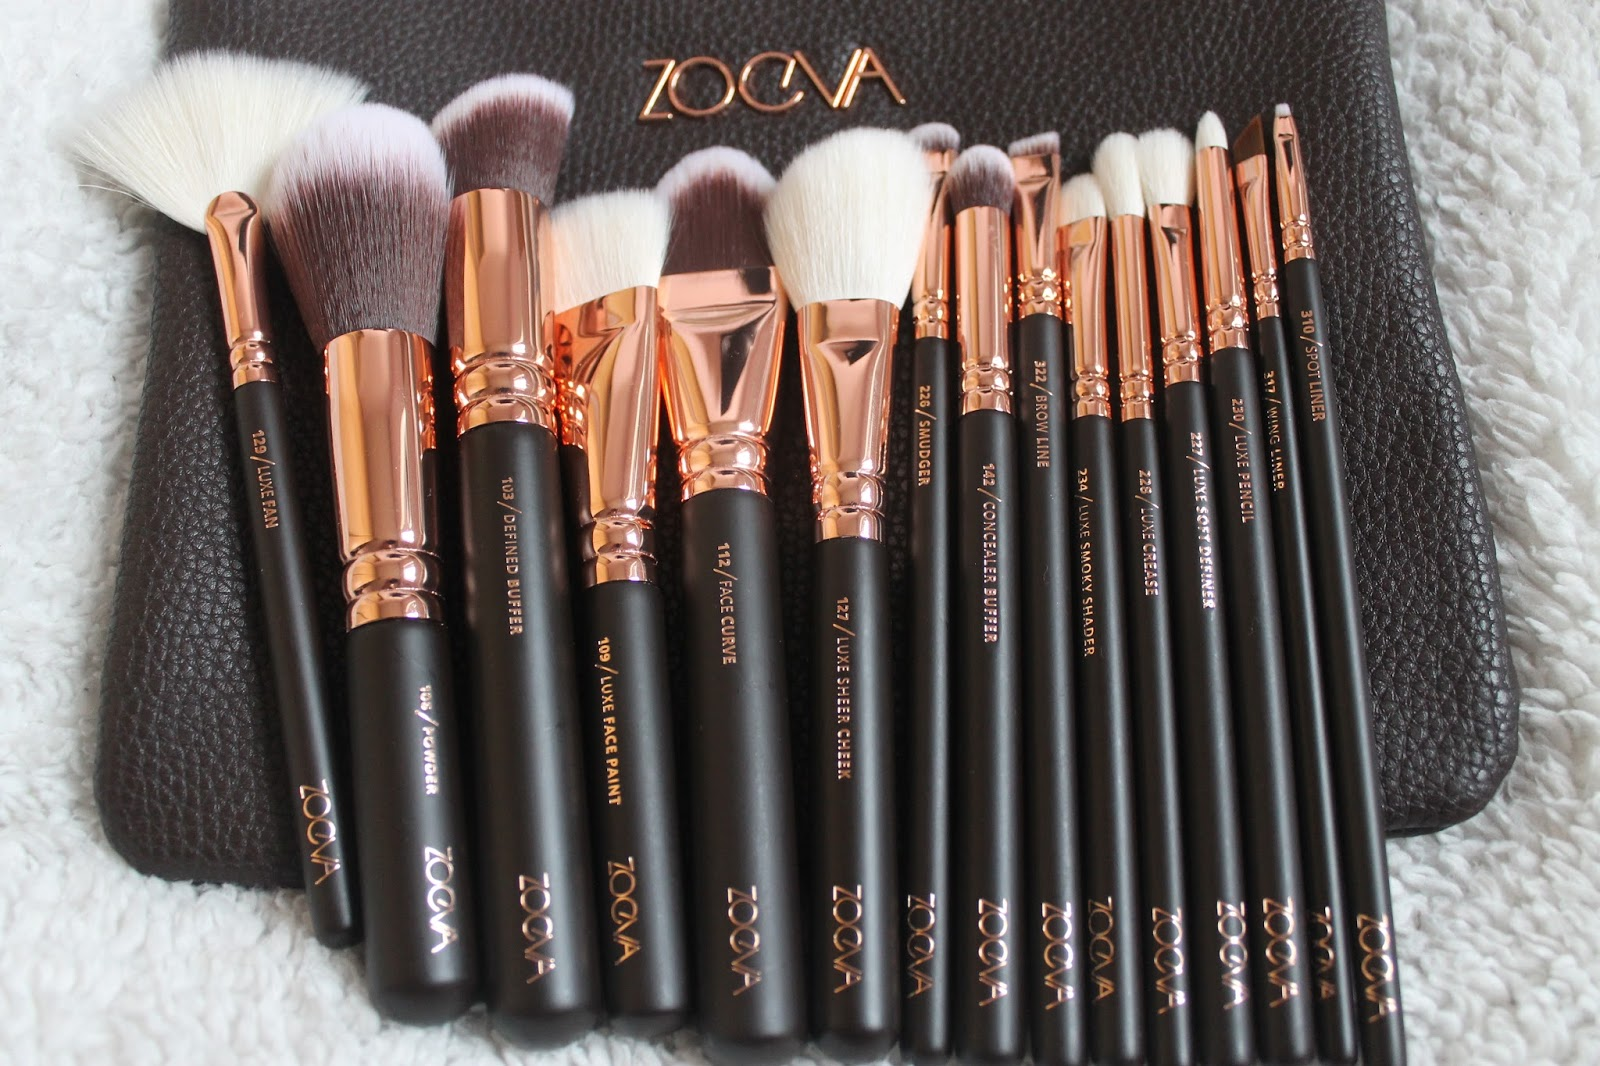 rose gold makeup brushes set. i decided to go for volume one because was torn between the full rose gold eye set and face brushes this seemed be makeup